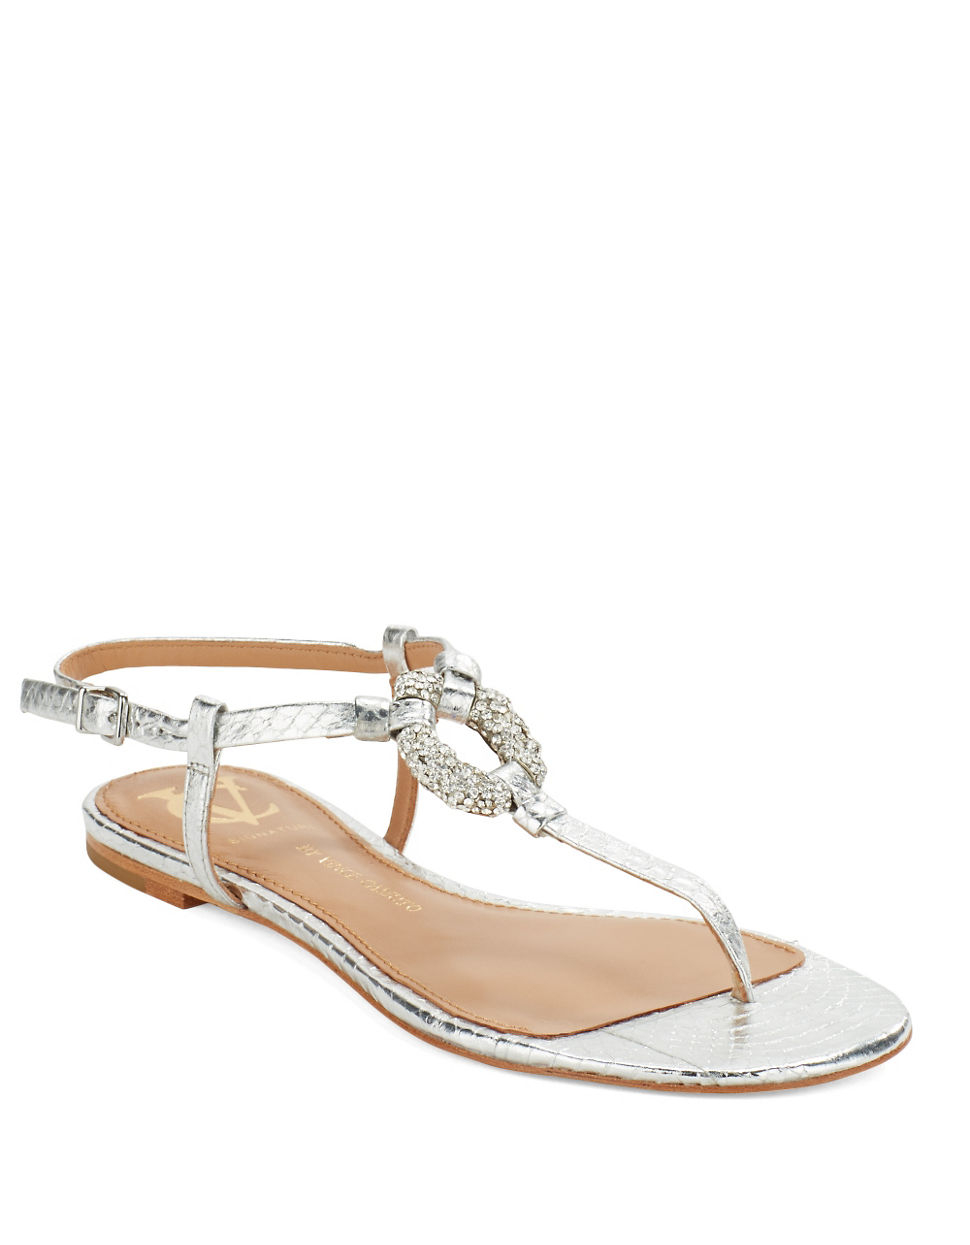 Lyst Vince Camuto Signature Bolda Thong Sandals In Metallic